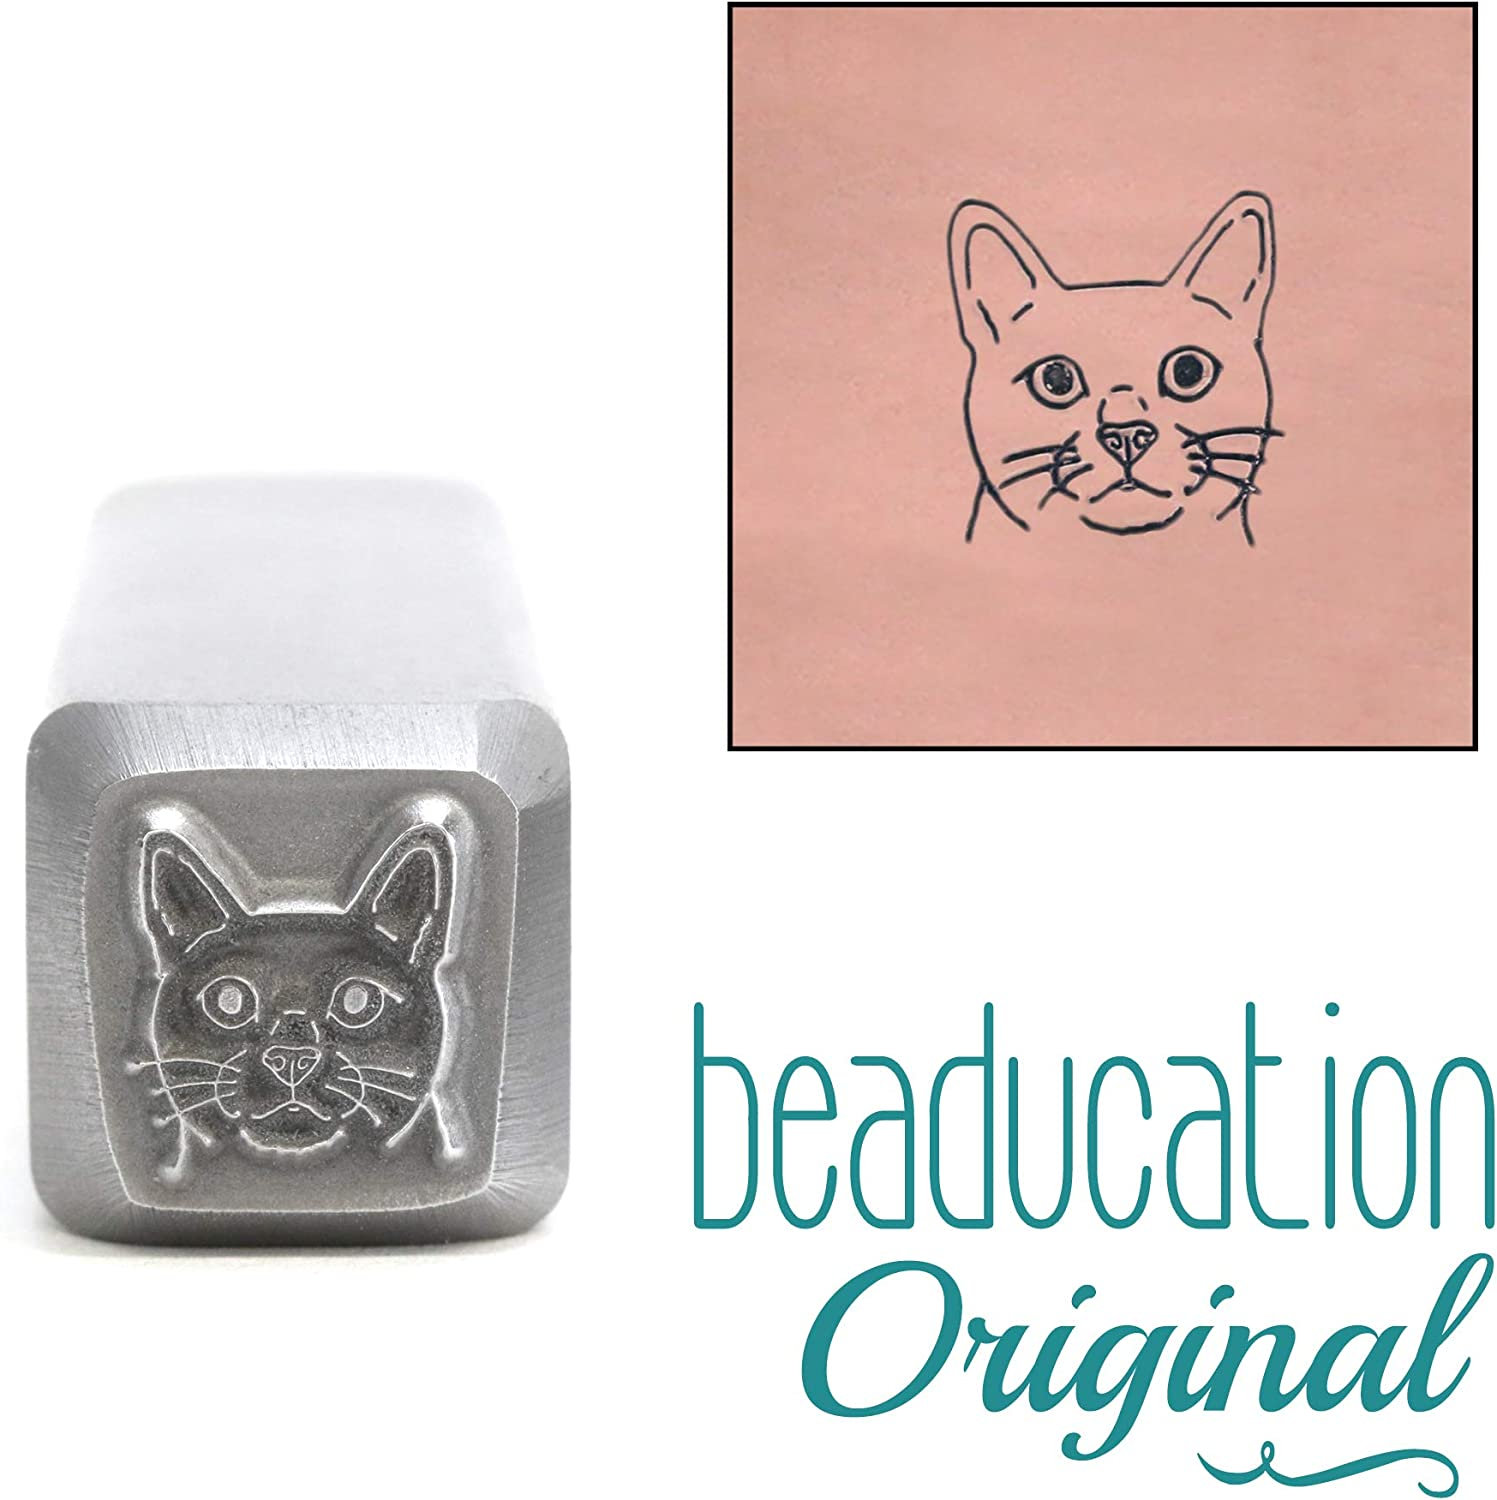 Beaducation Original Metal Design Stamps Cat Face Metal Design Stamp 8.5mm Feline Head Kitty Kitten Punch Stamping Tool for Hand Stamped DIY Jewelry Crafts